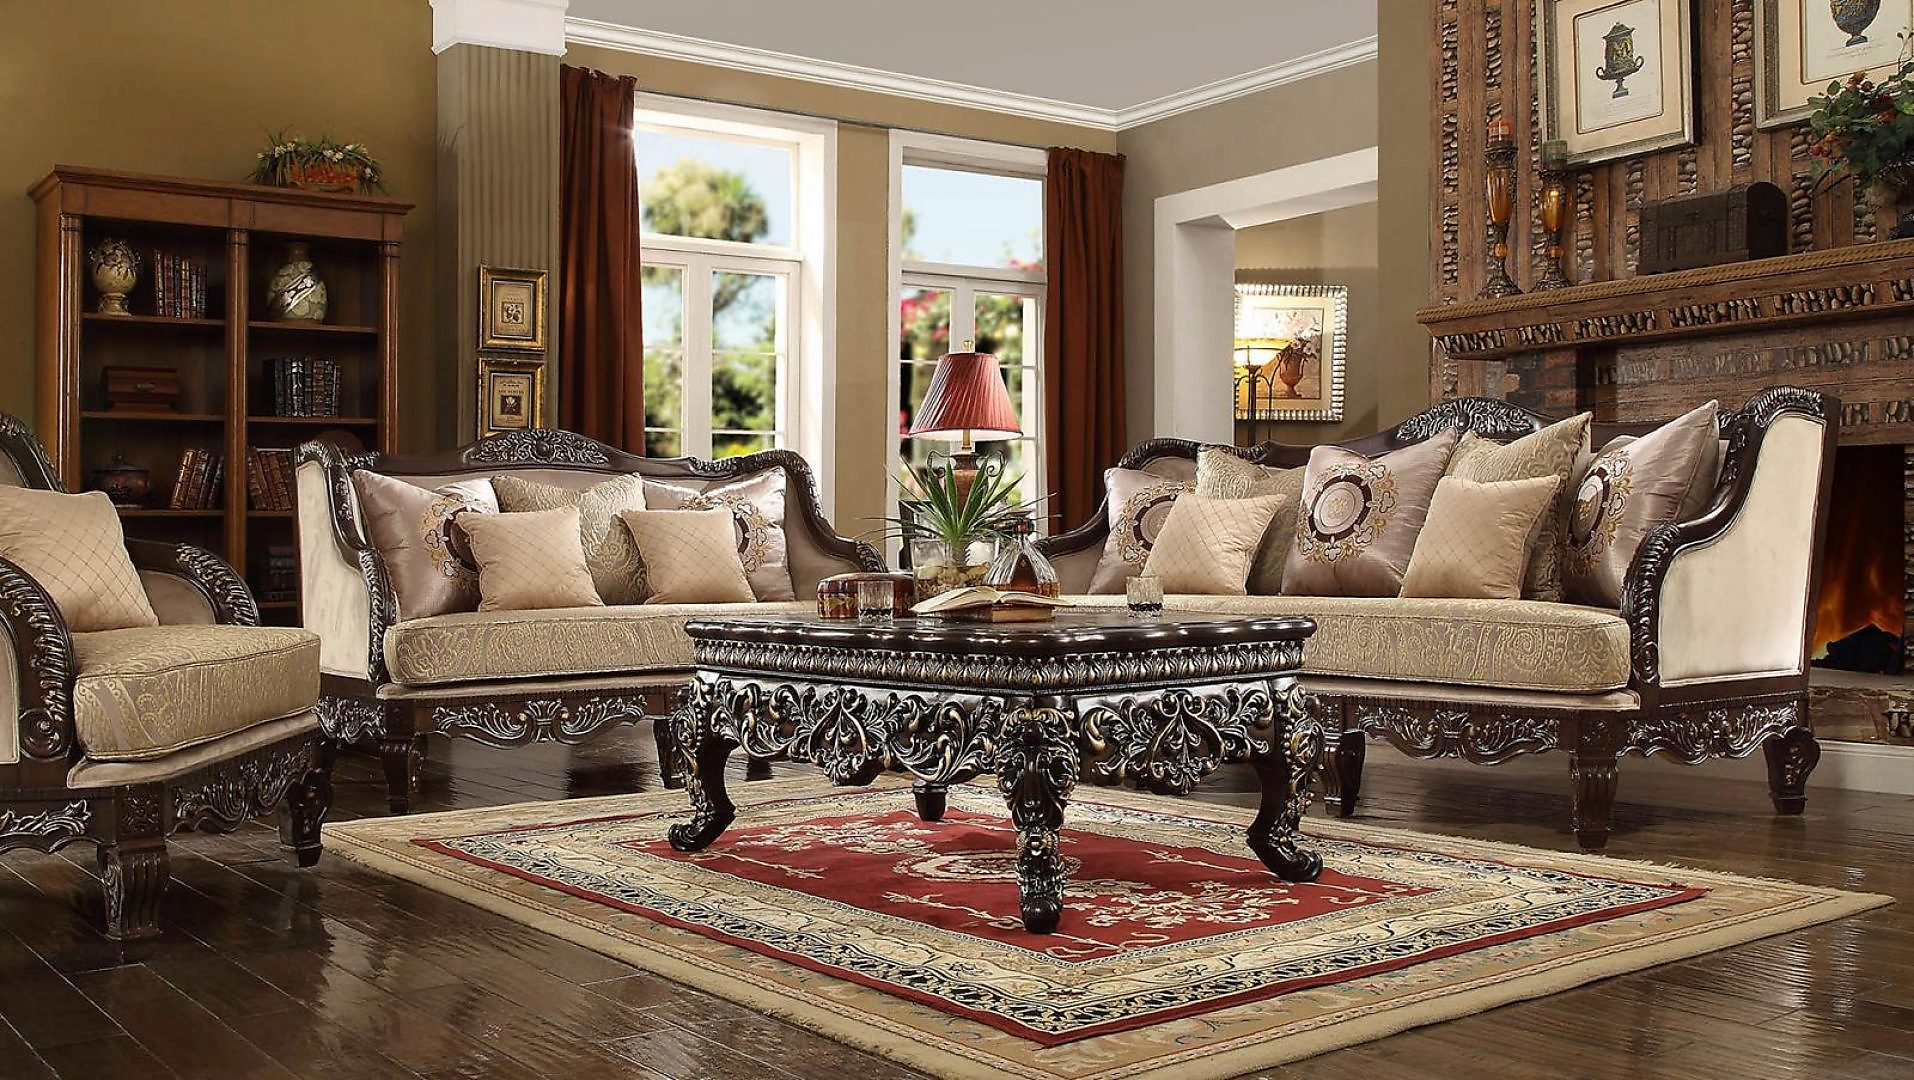 Traditional HD-914 Sofa Loveseat Chair Coffee Table Two End Tables 6Pcs by Homey Design